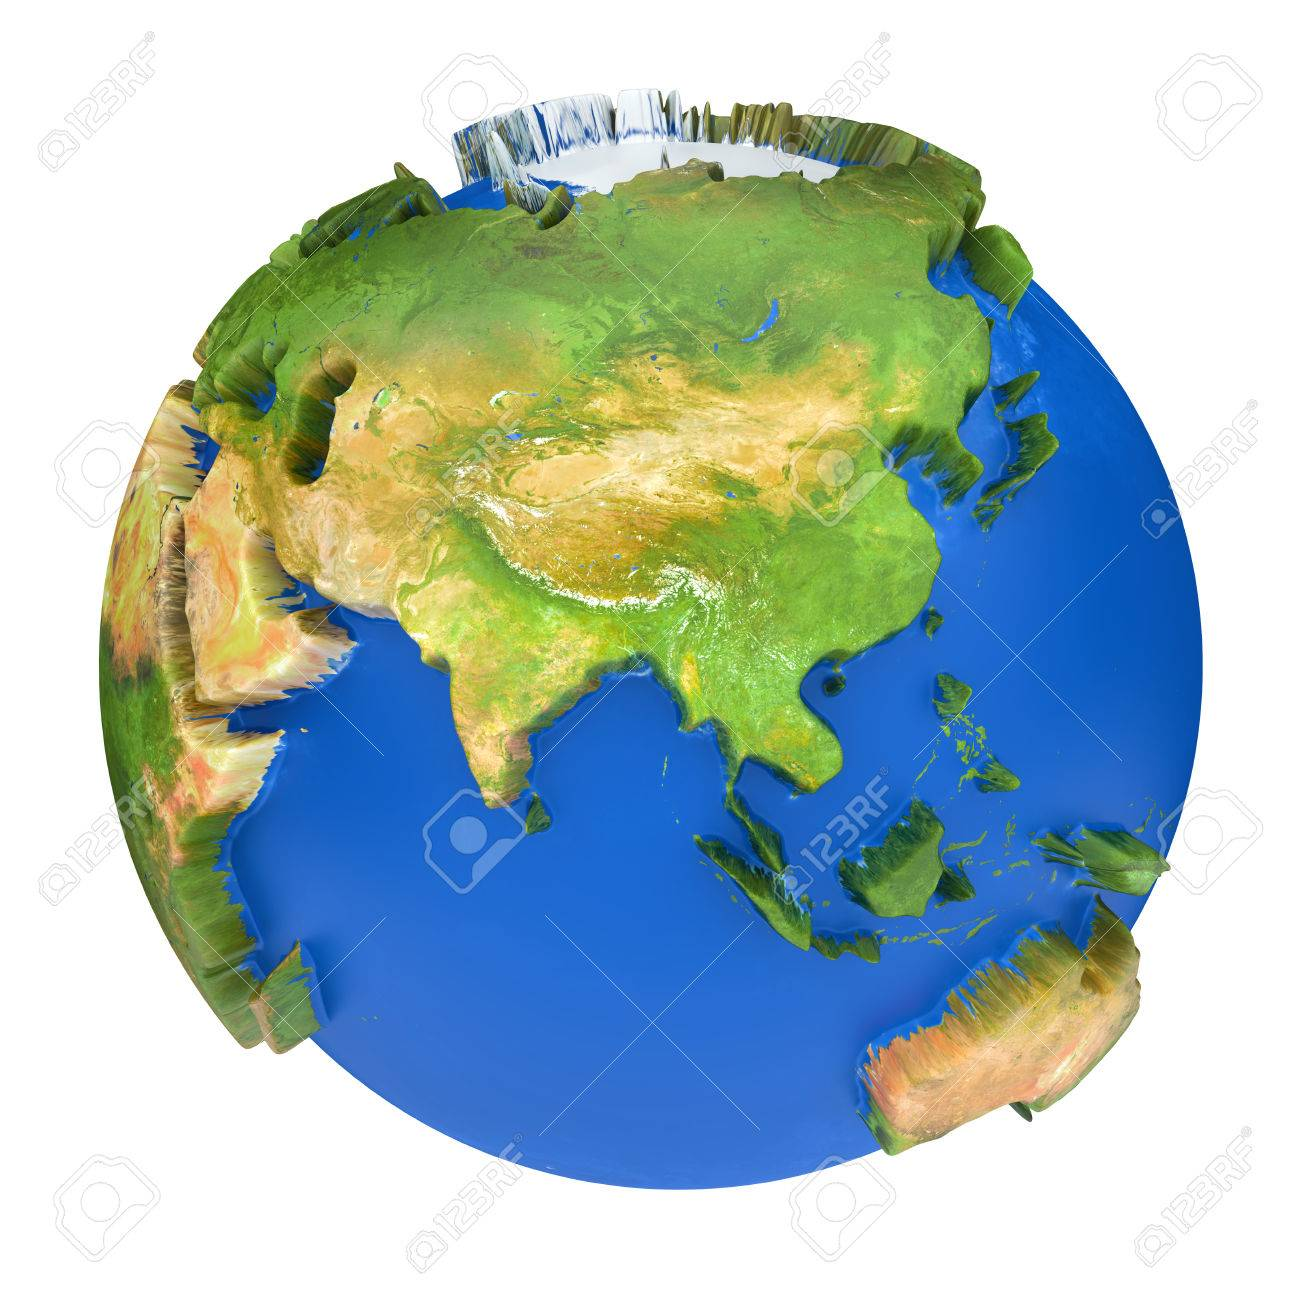 Earth World Map Australia And Asia On A Planet Globe 3d Concept